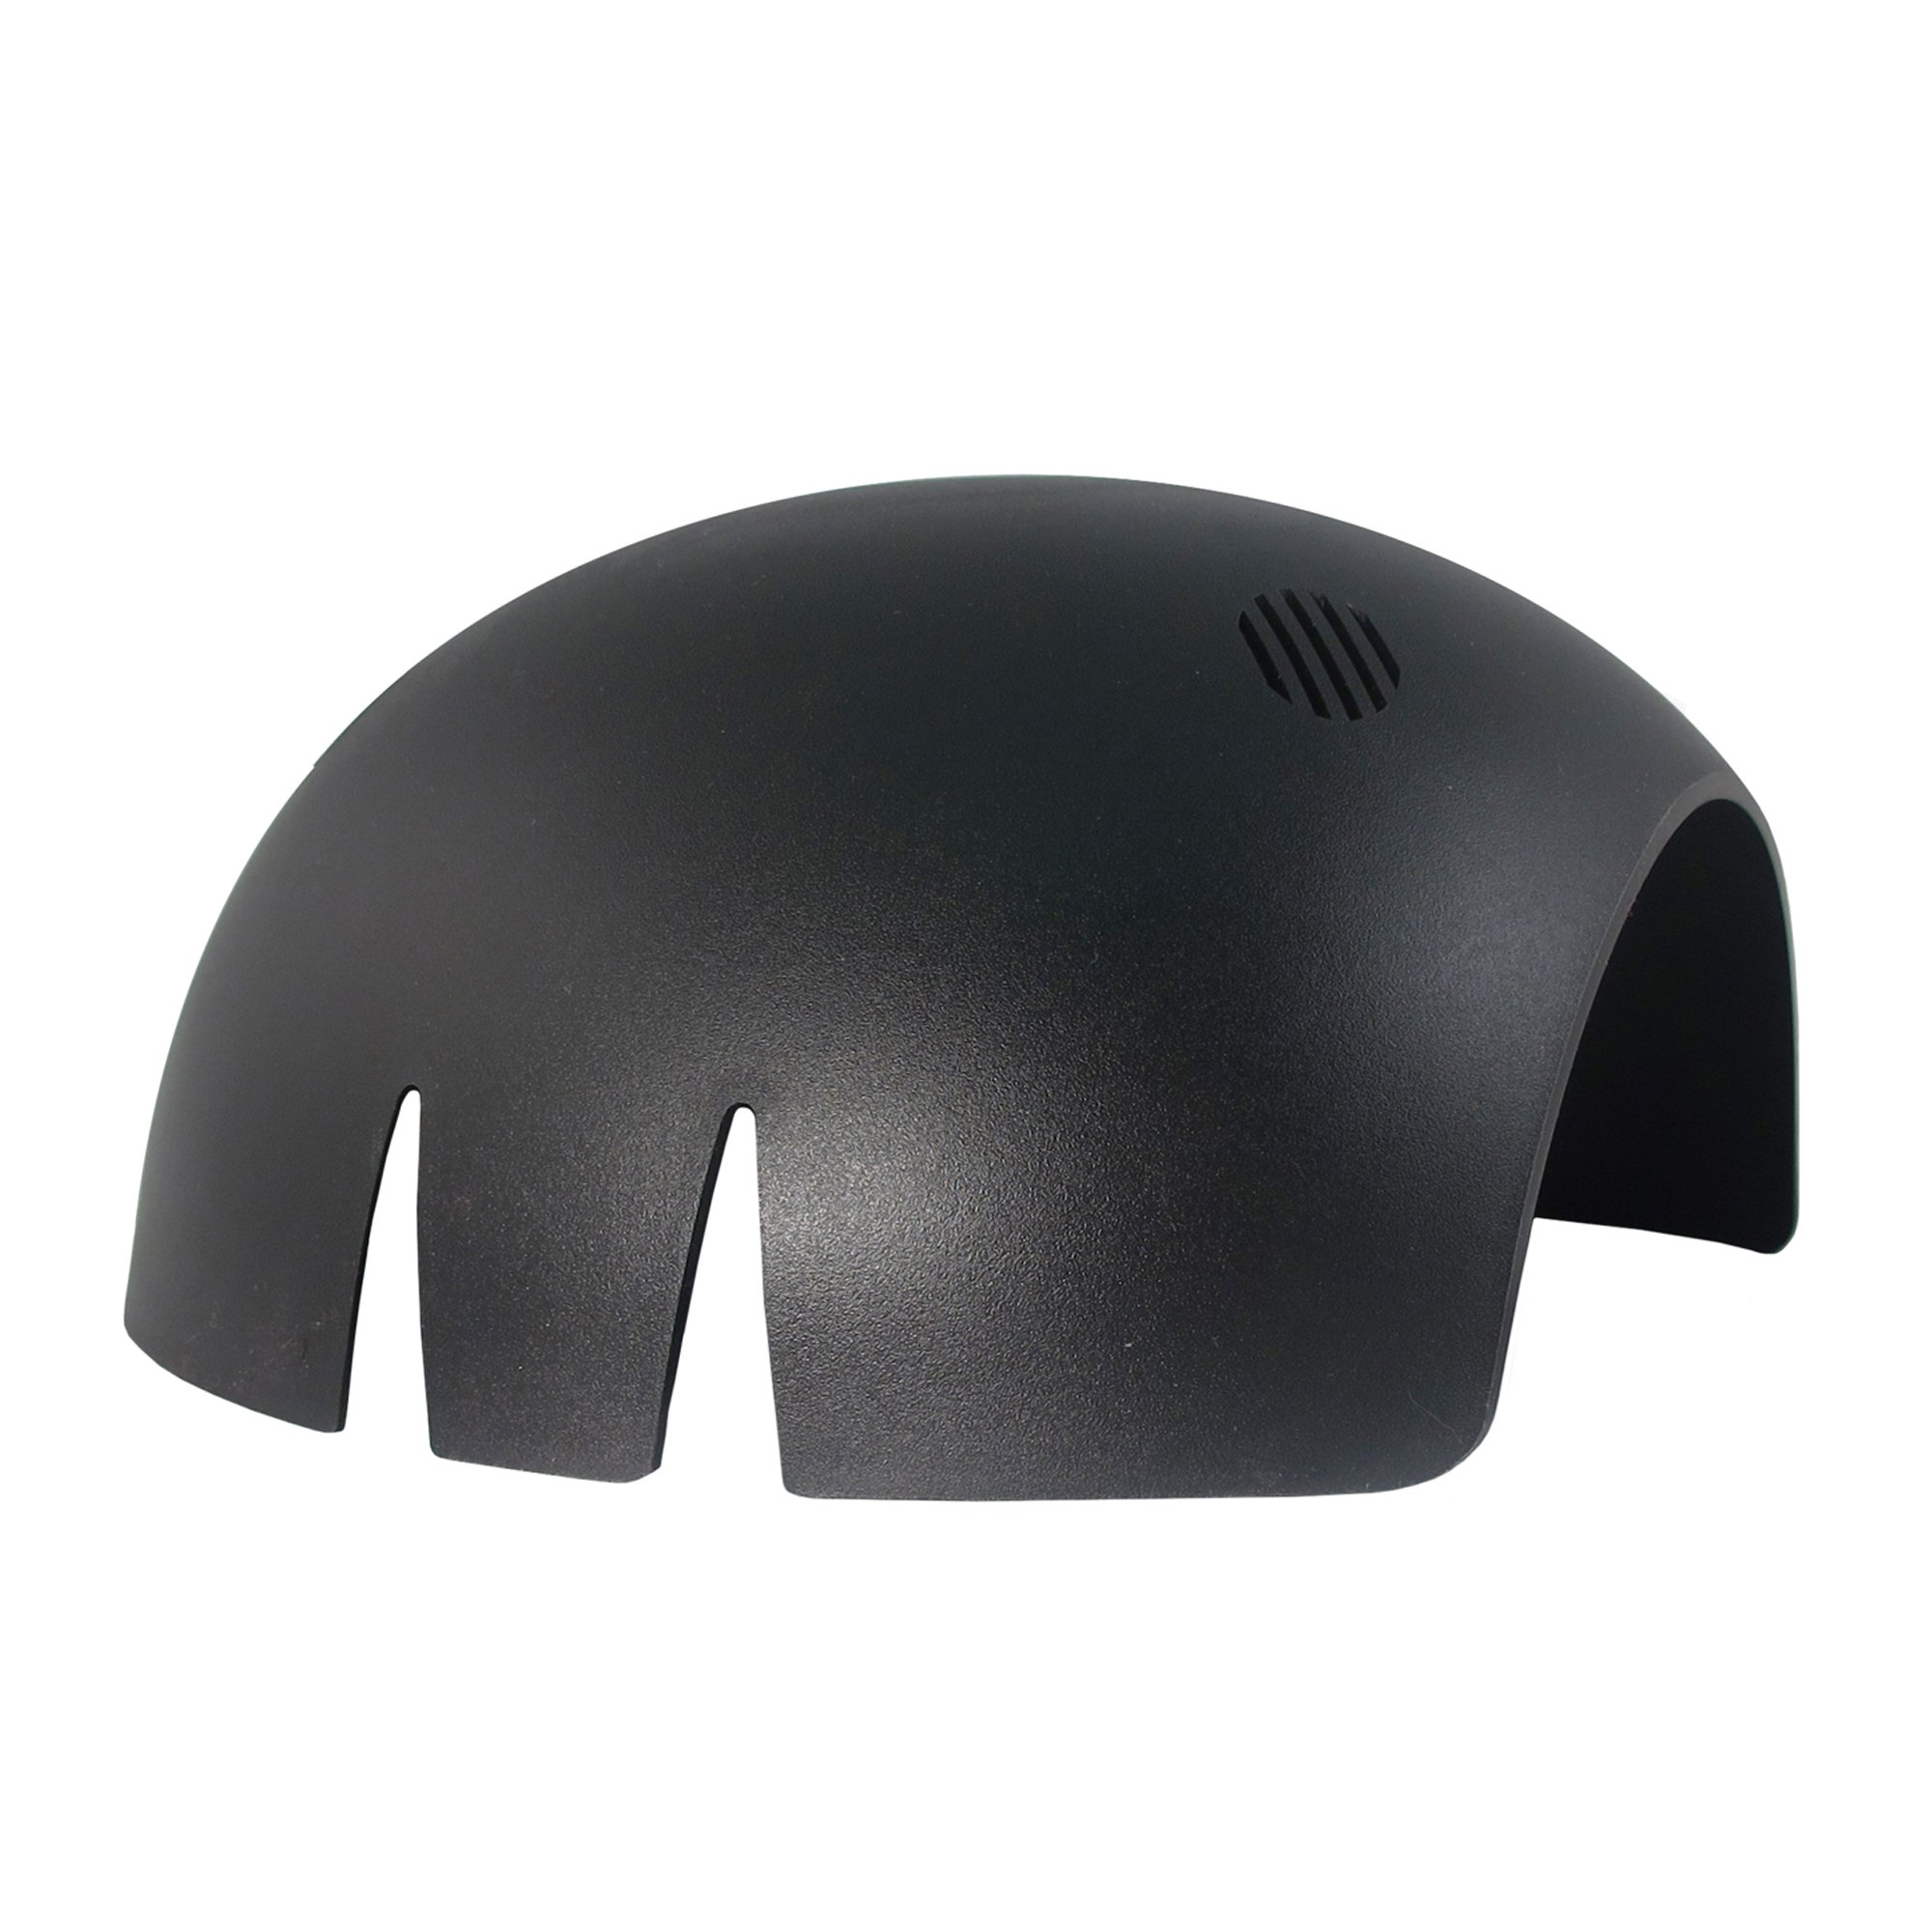 ERB Safety Products 19404 Create a Cap Shell without Foam Pad, Size: 6 1/2 - 8, Black